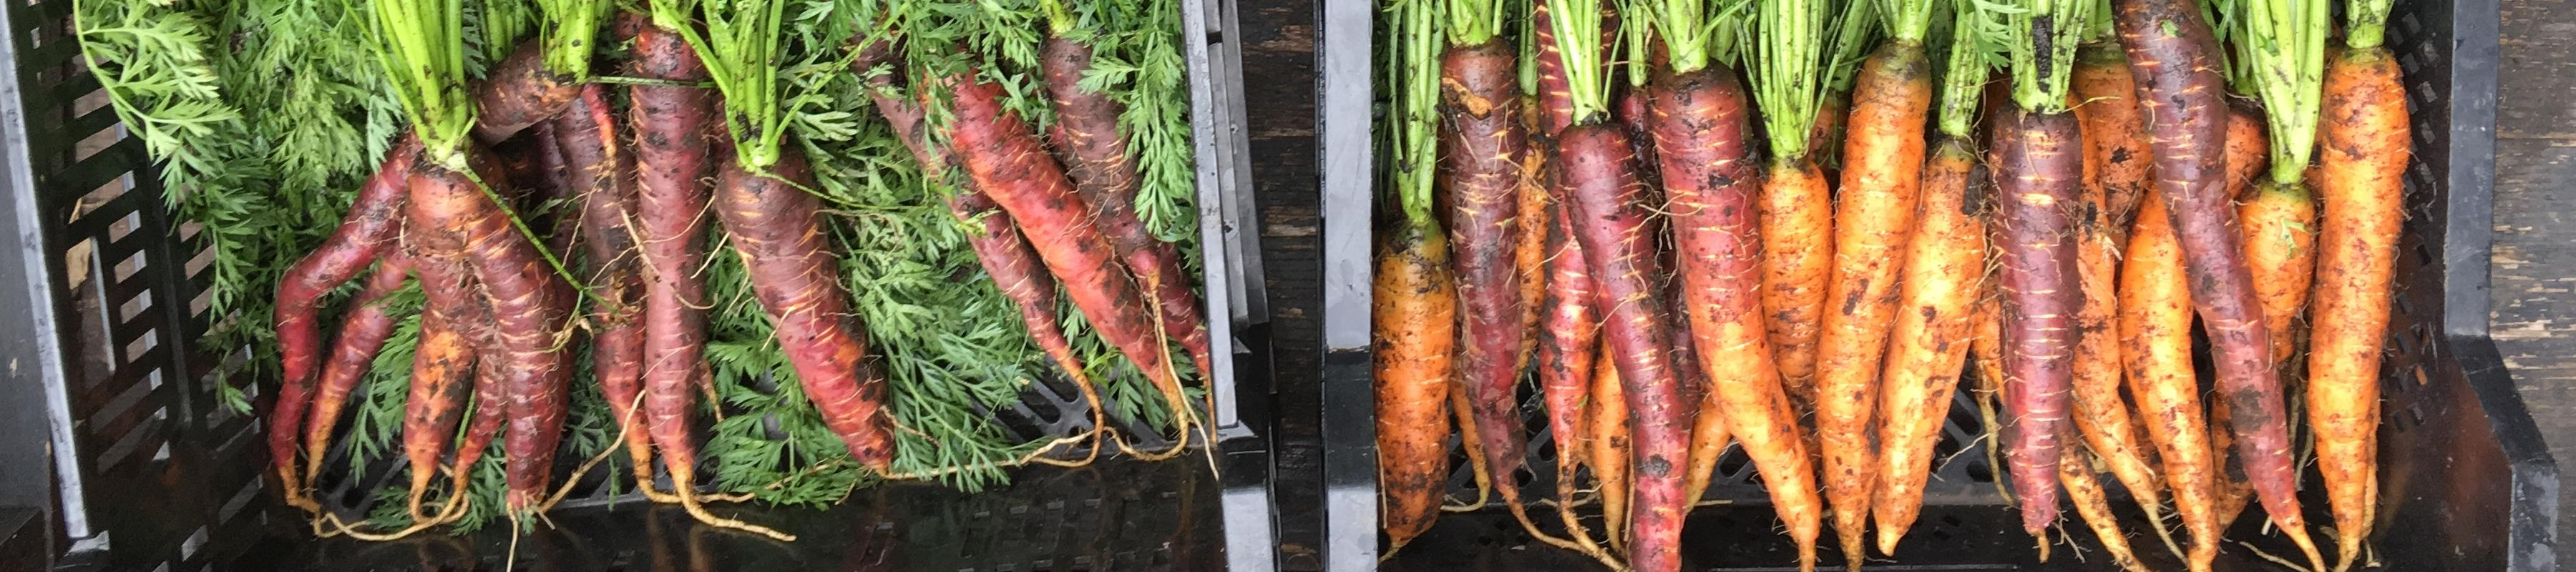 Carrots fresh out of the first